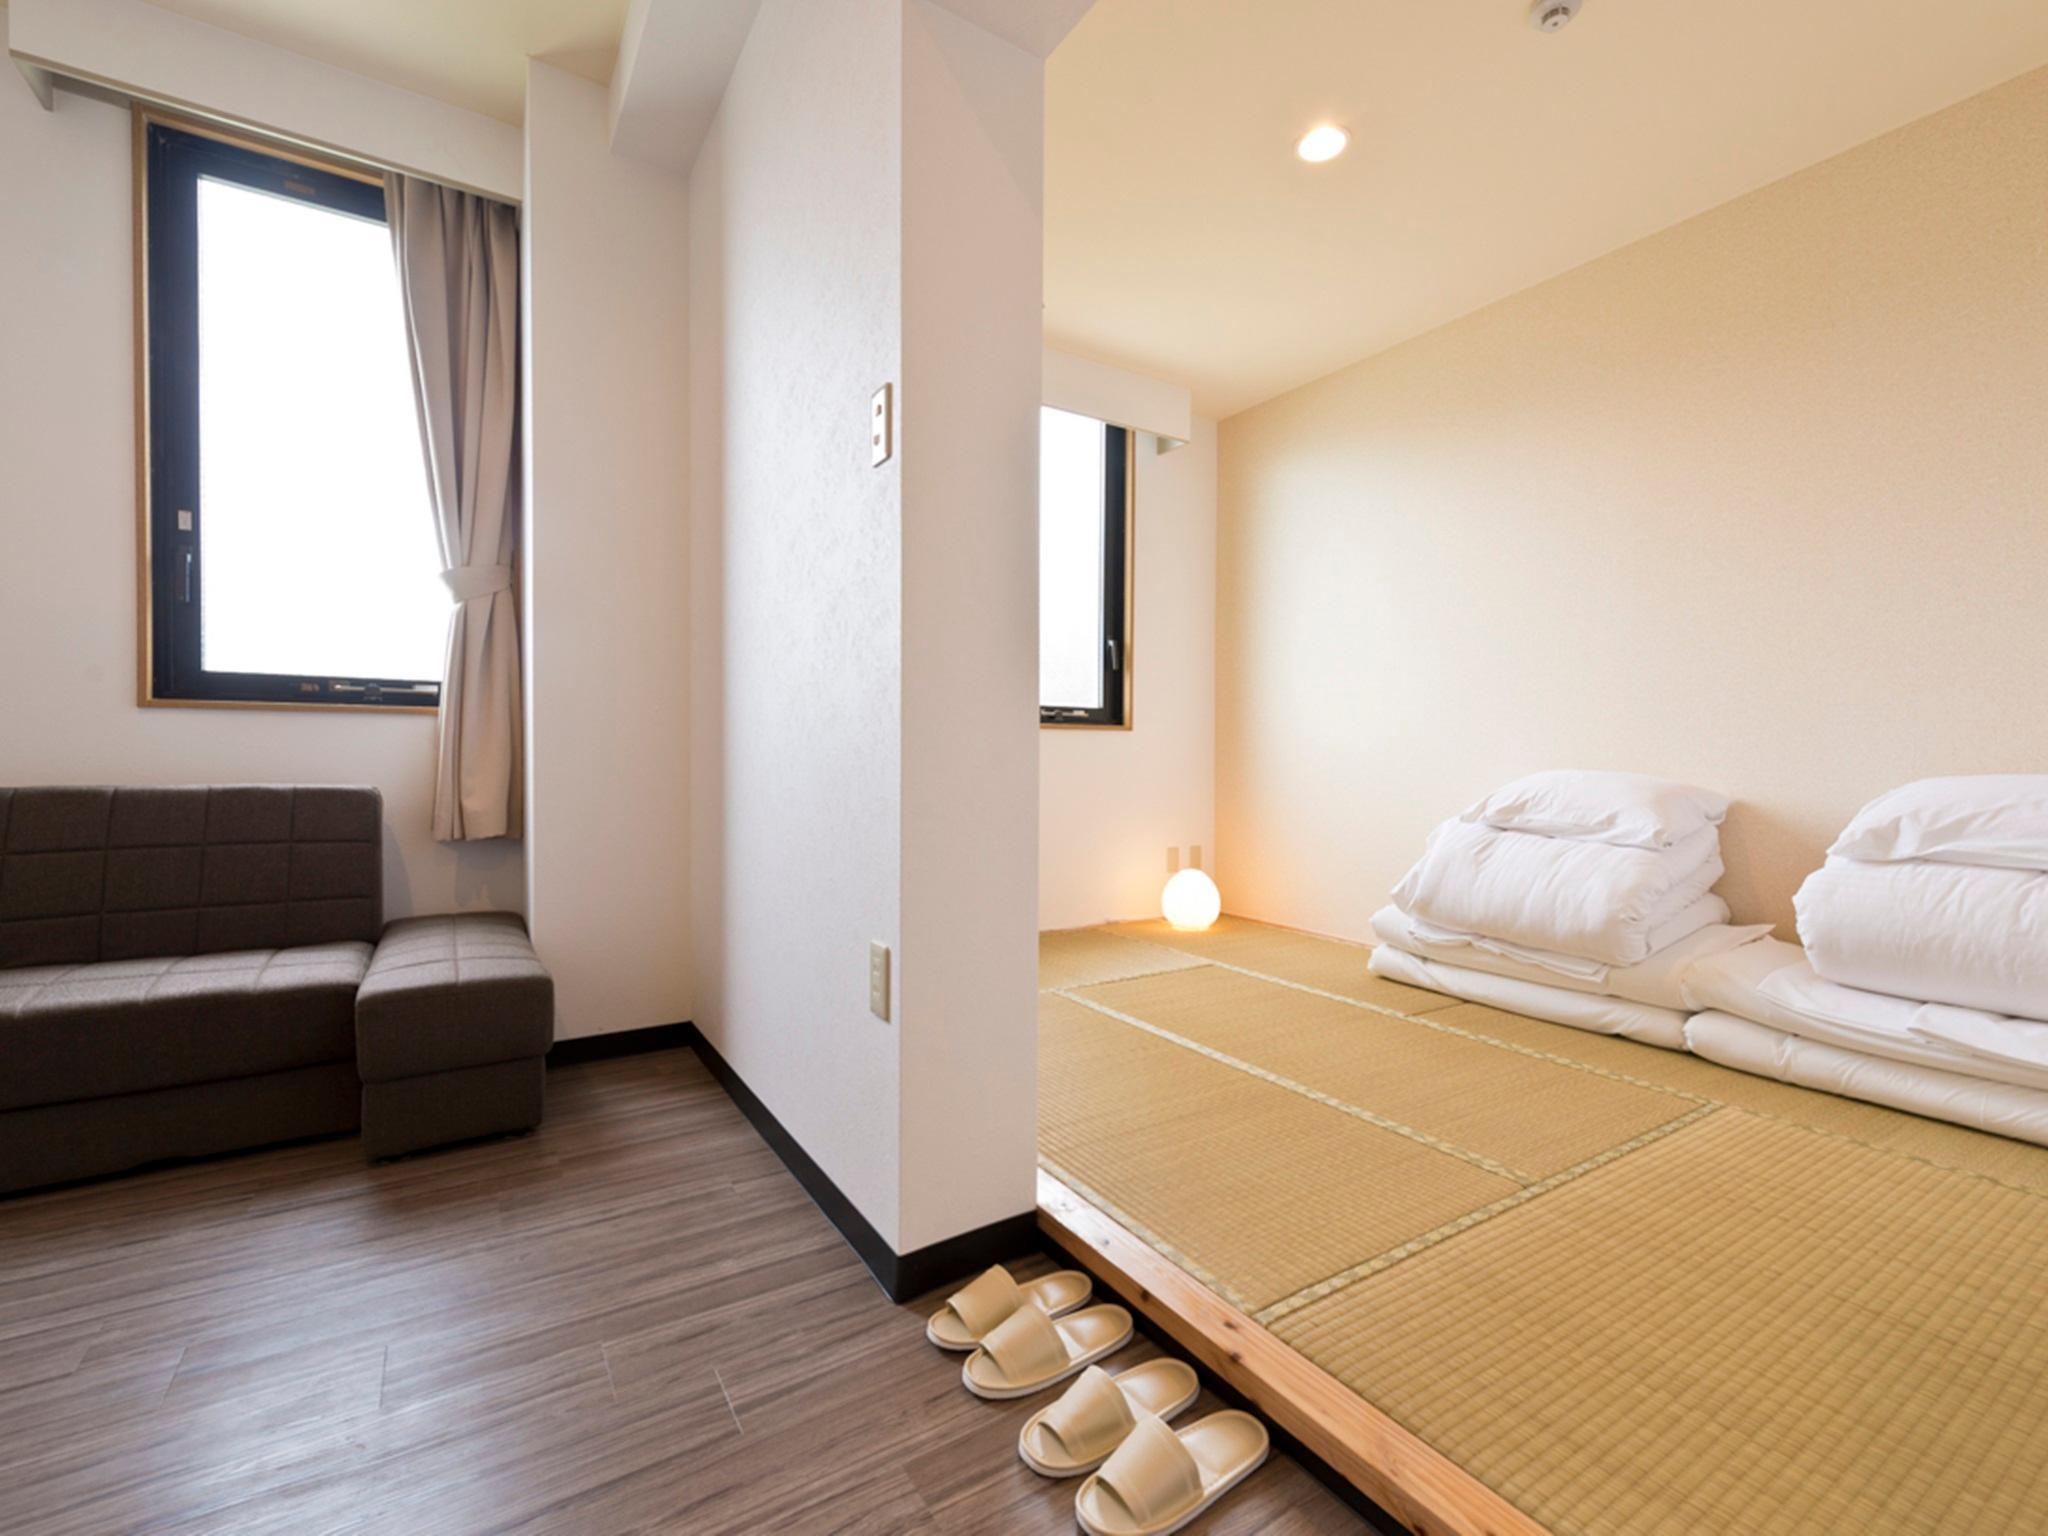 natural japanese are into the floor house world like material distinct have tatami basket but market this raw homes from permeating i a walking mats floors most bed designpunk made bedroom smell